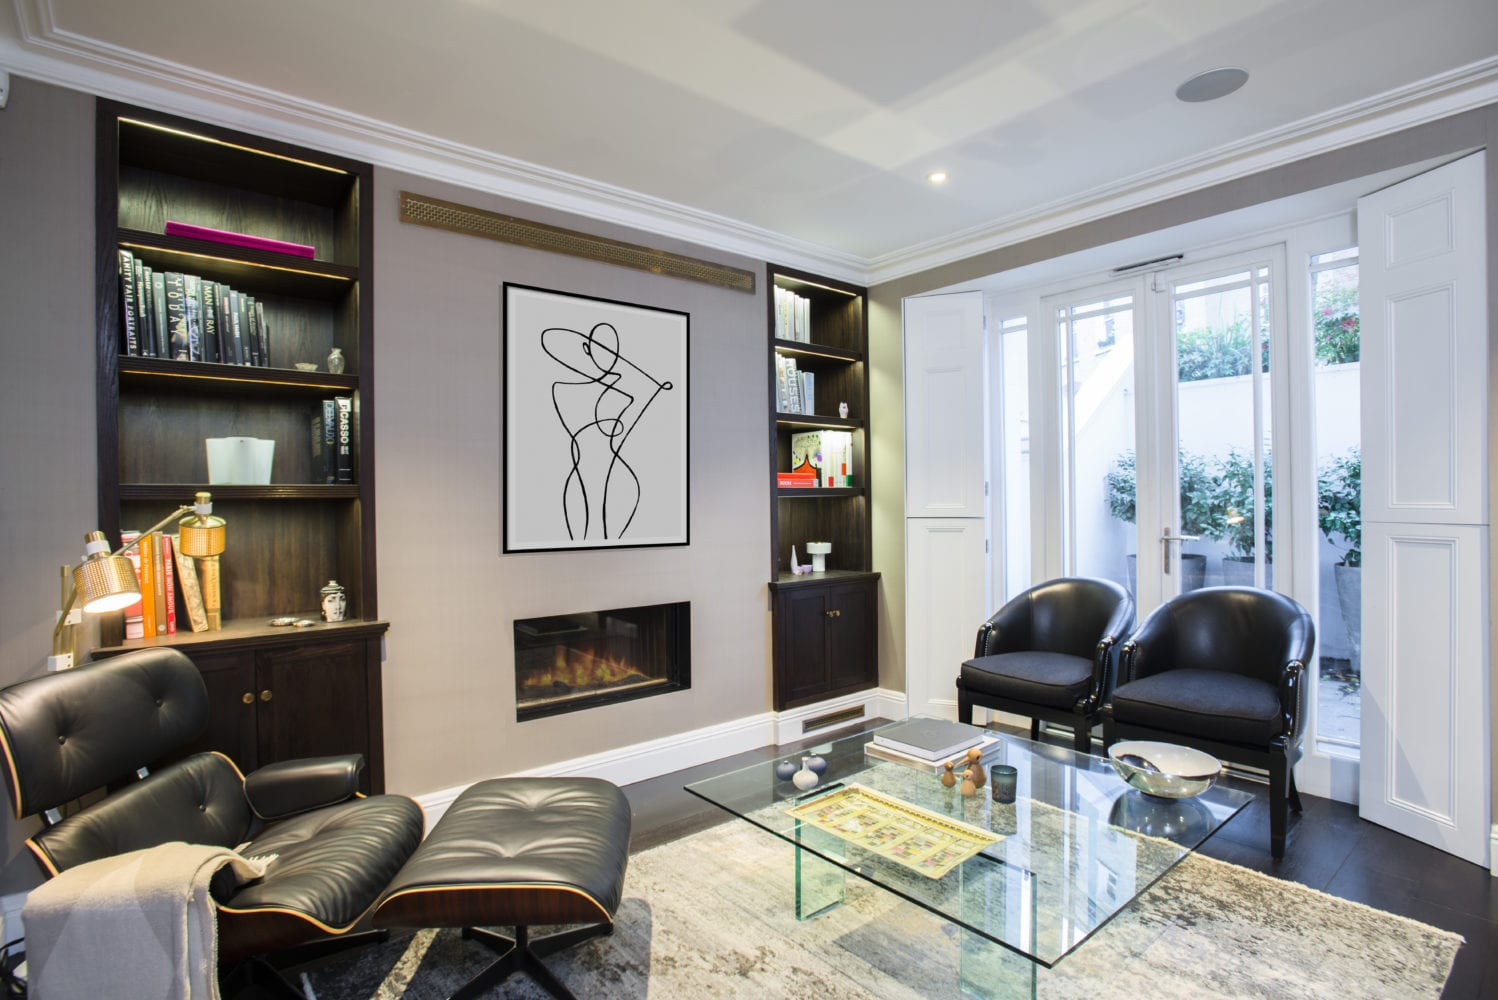 Synnove Lounge - After - Primrose Hill Project. NW3 interiors used trusted furniture brands to uplift this stunning Primrose Hill village home. Click to see on our interior design portfolio.